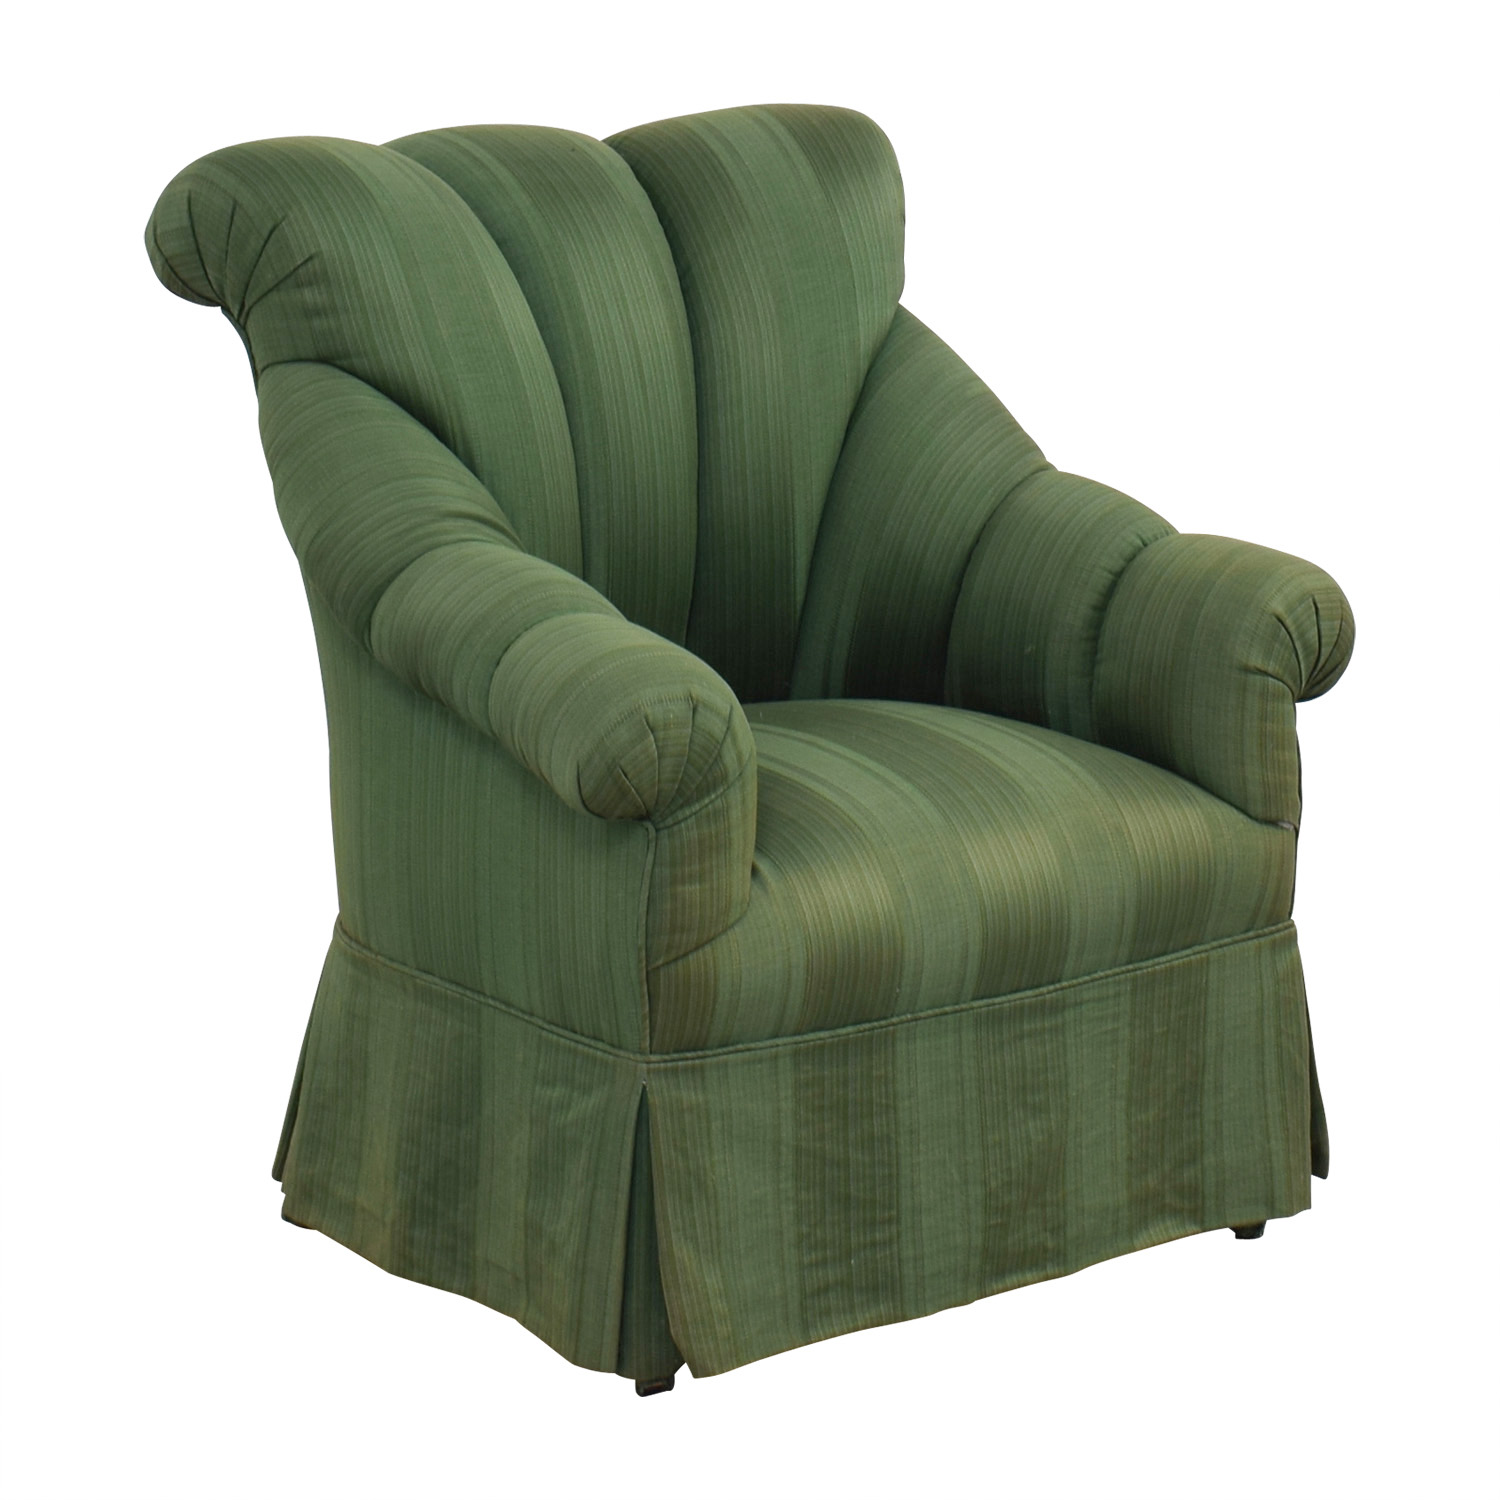 Furniture Masters Furniture Masters Dark Green Skirted Armchair coupon